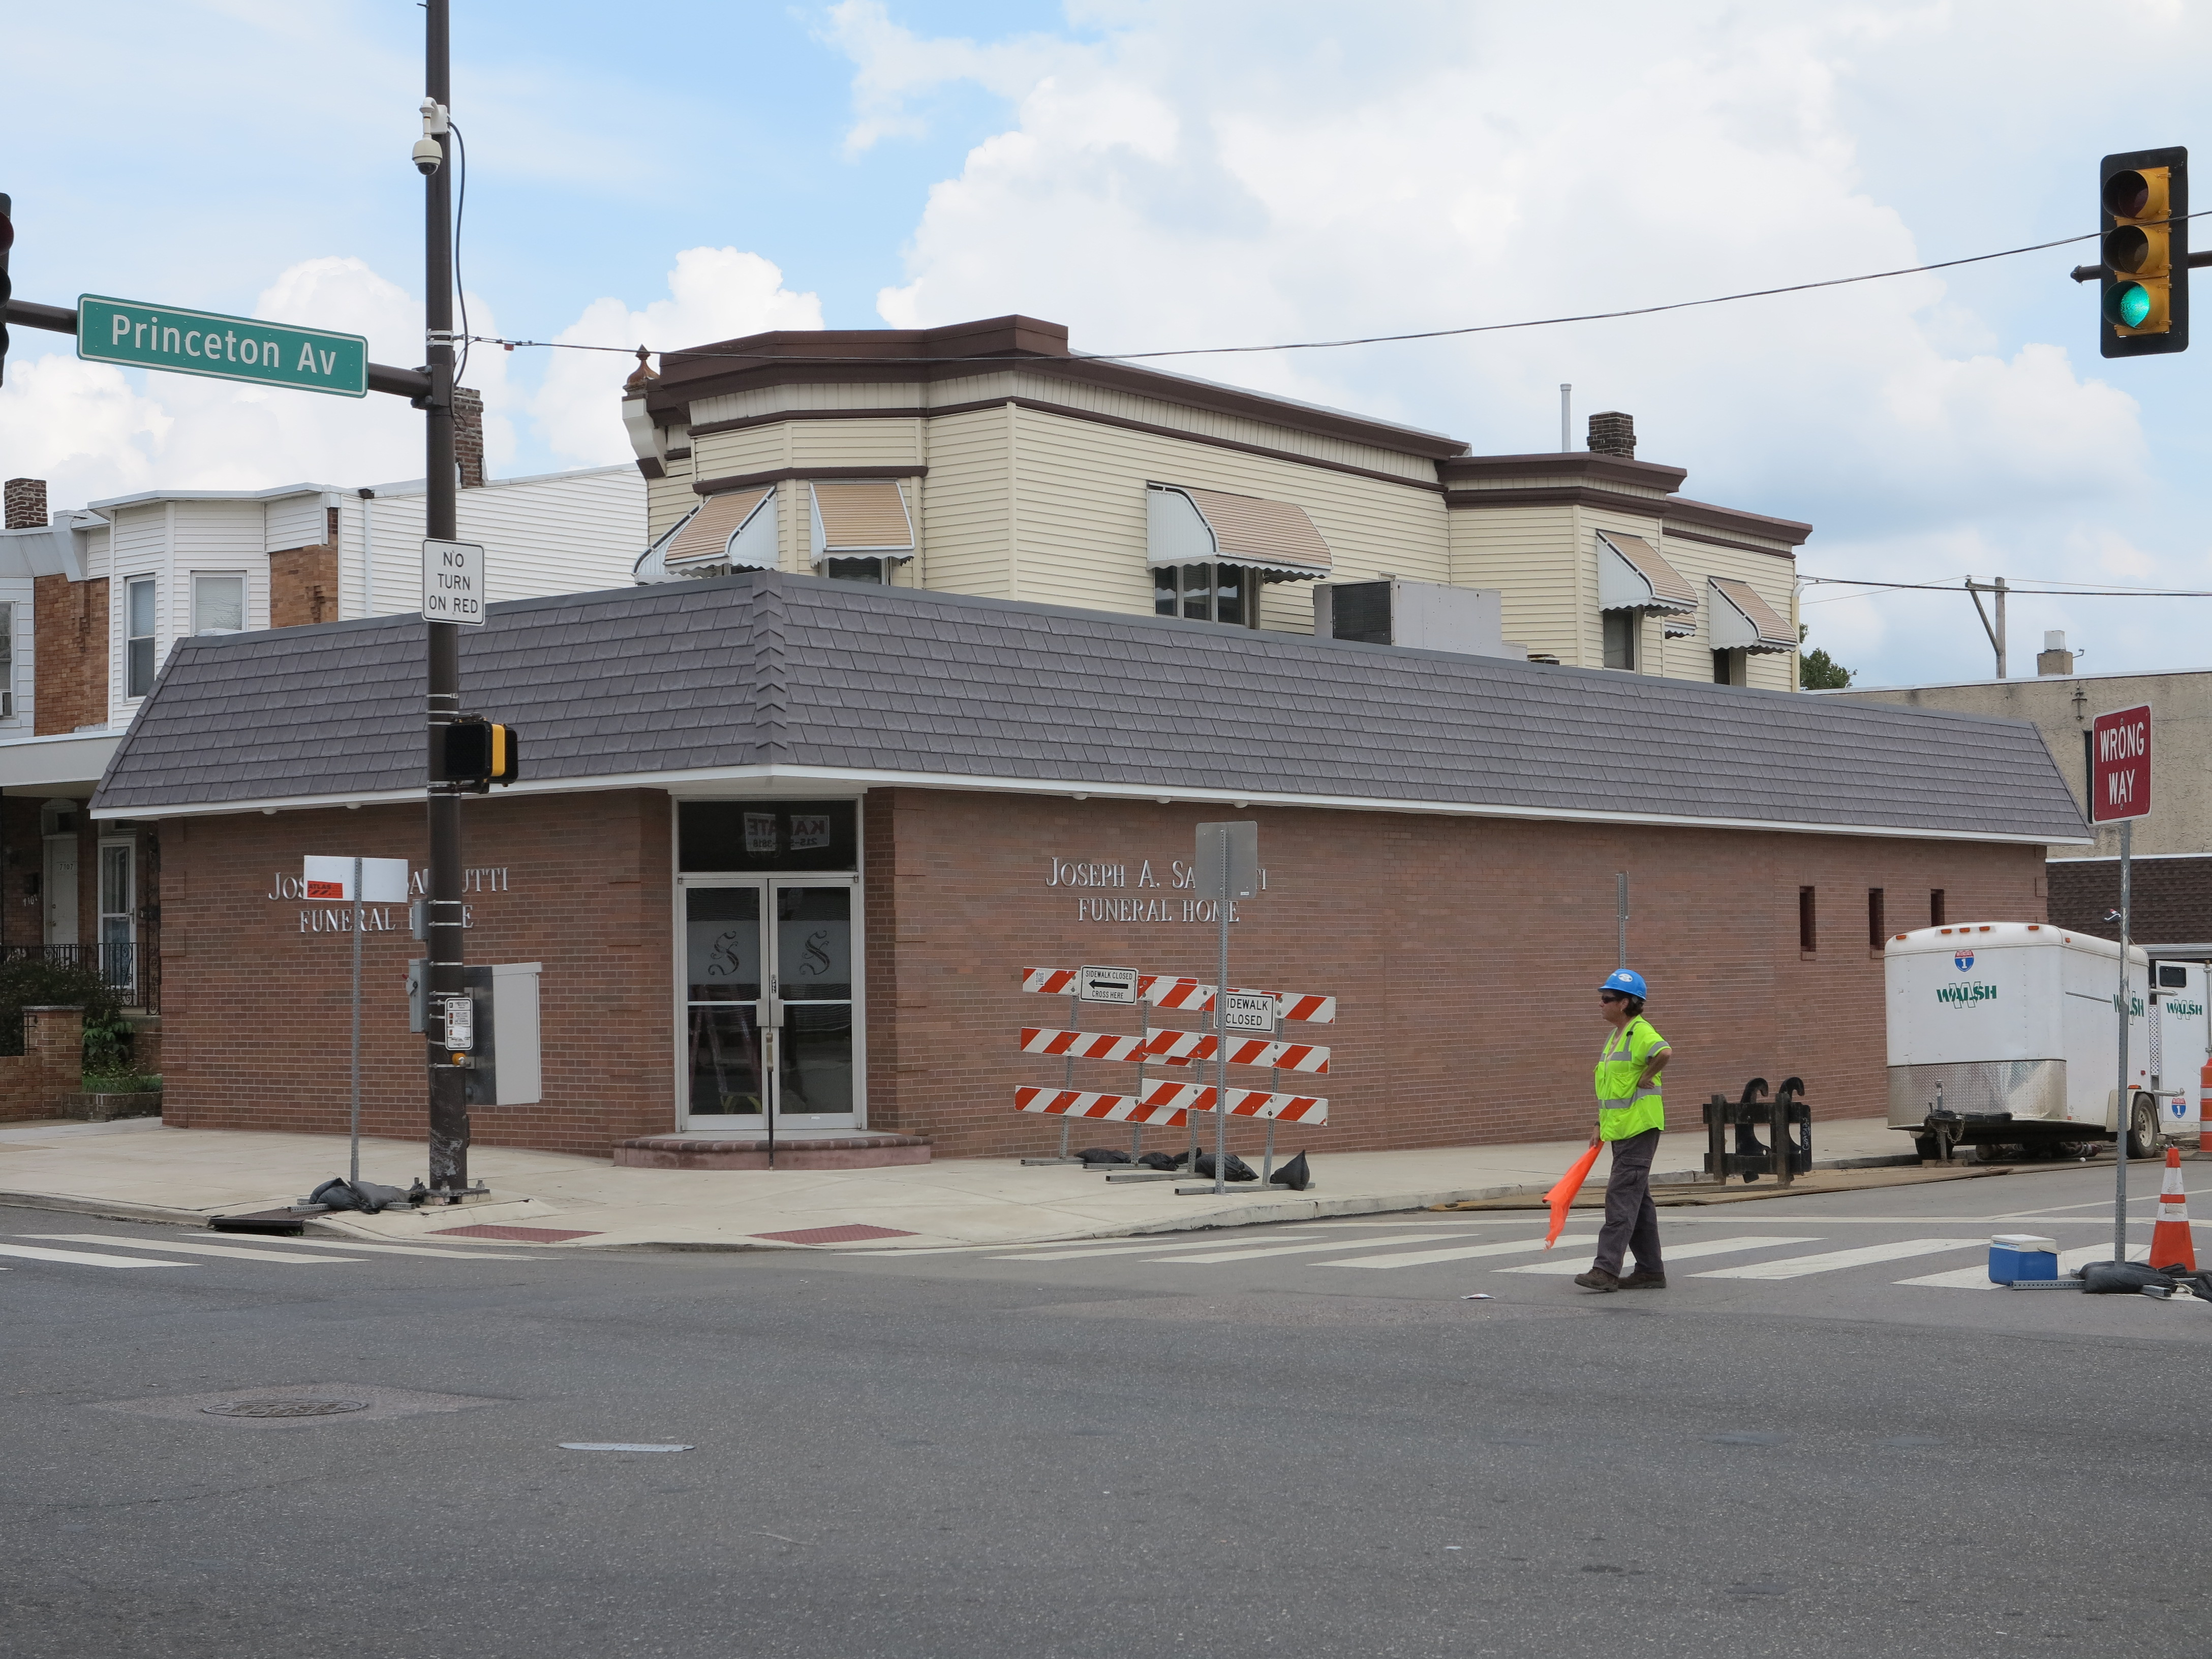 Sannutti Funeral Home went from stucco to brick in the last year.